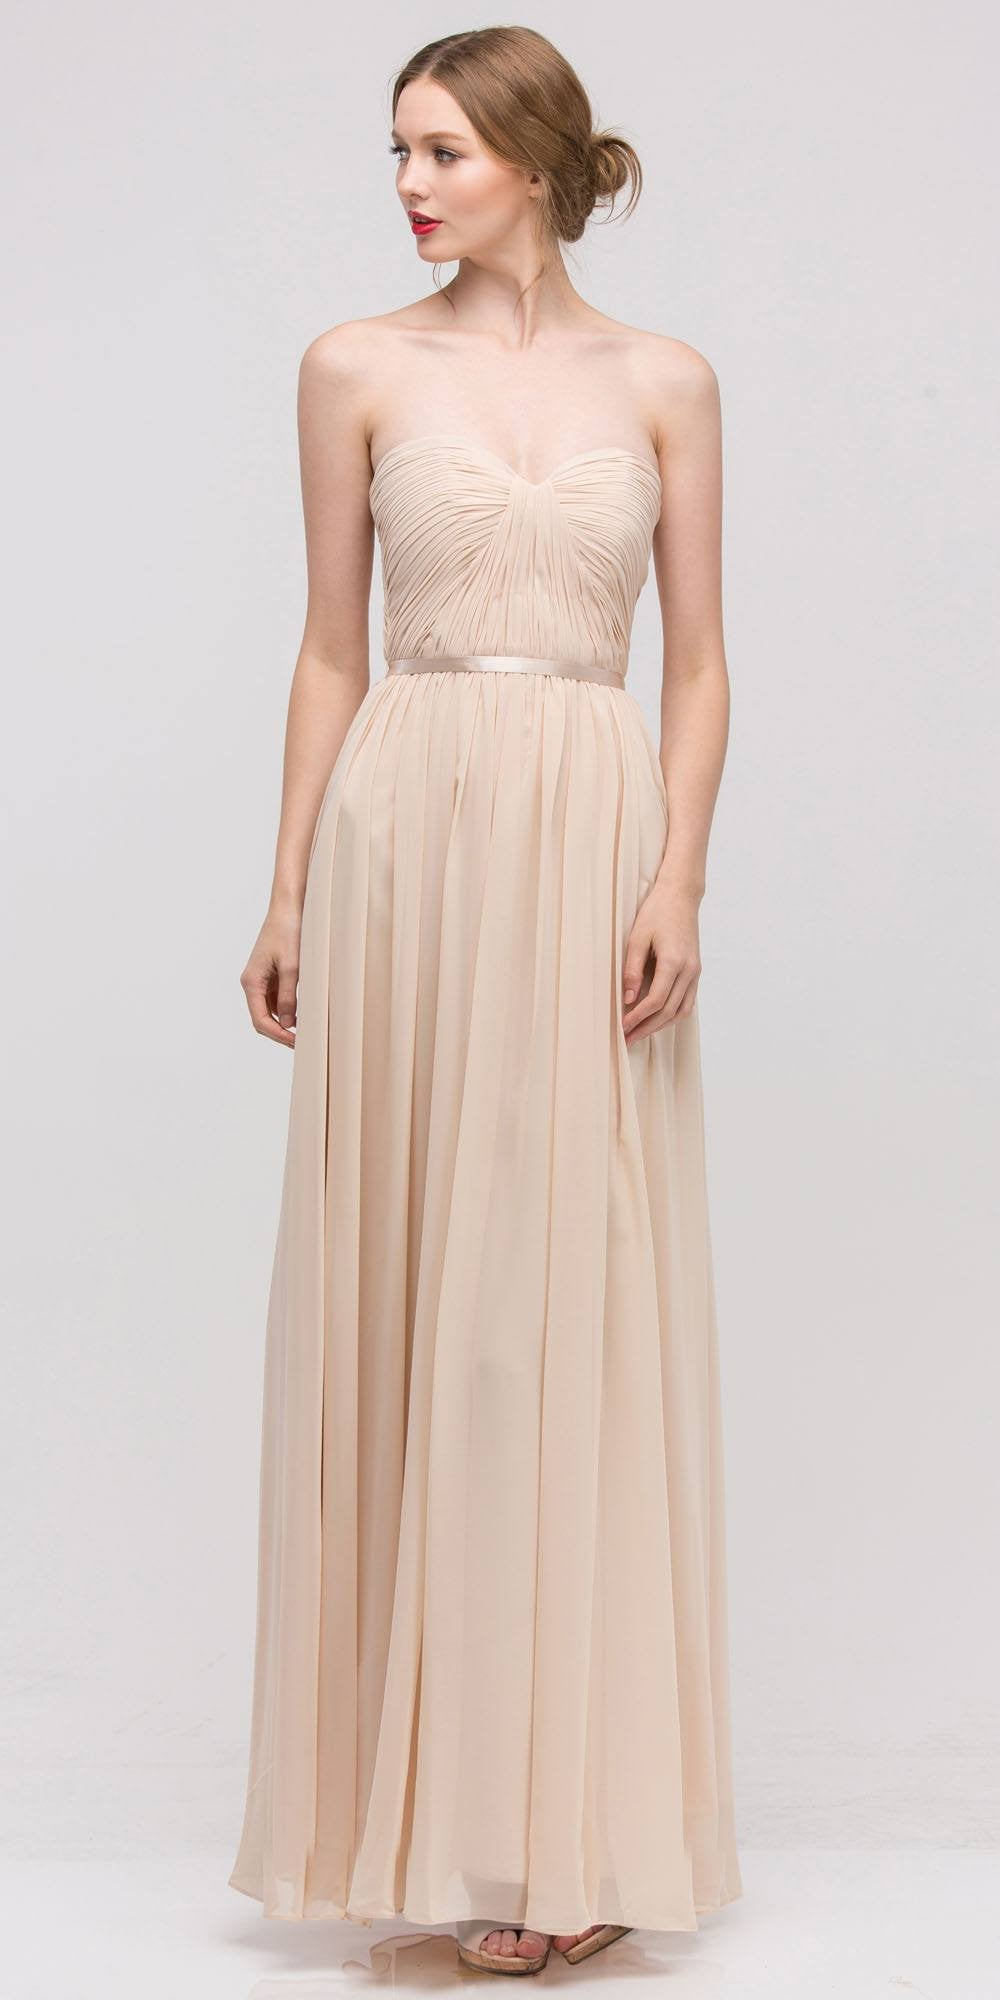 Belted Waist Ruched Long A Line Champagne Formal Dress